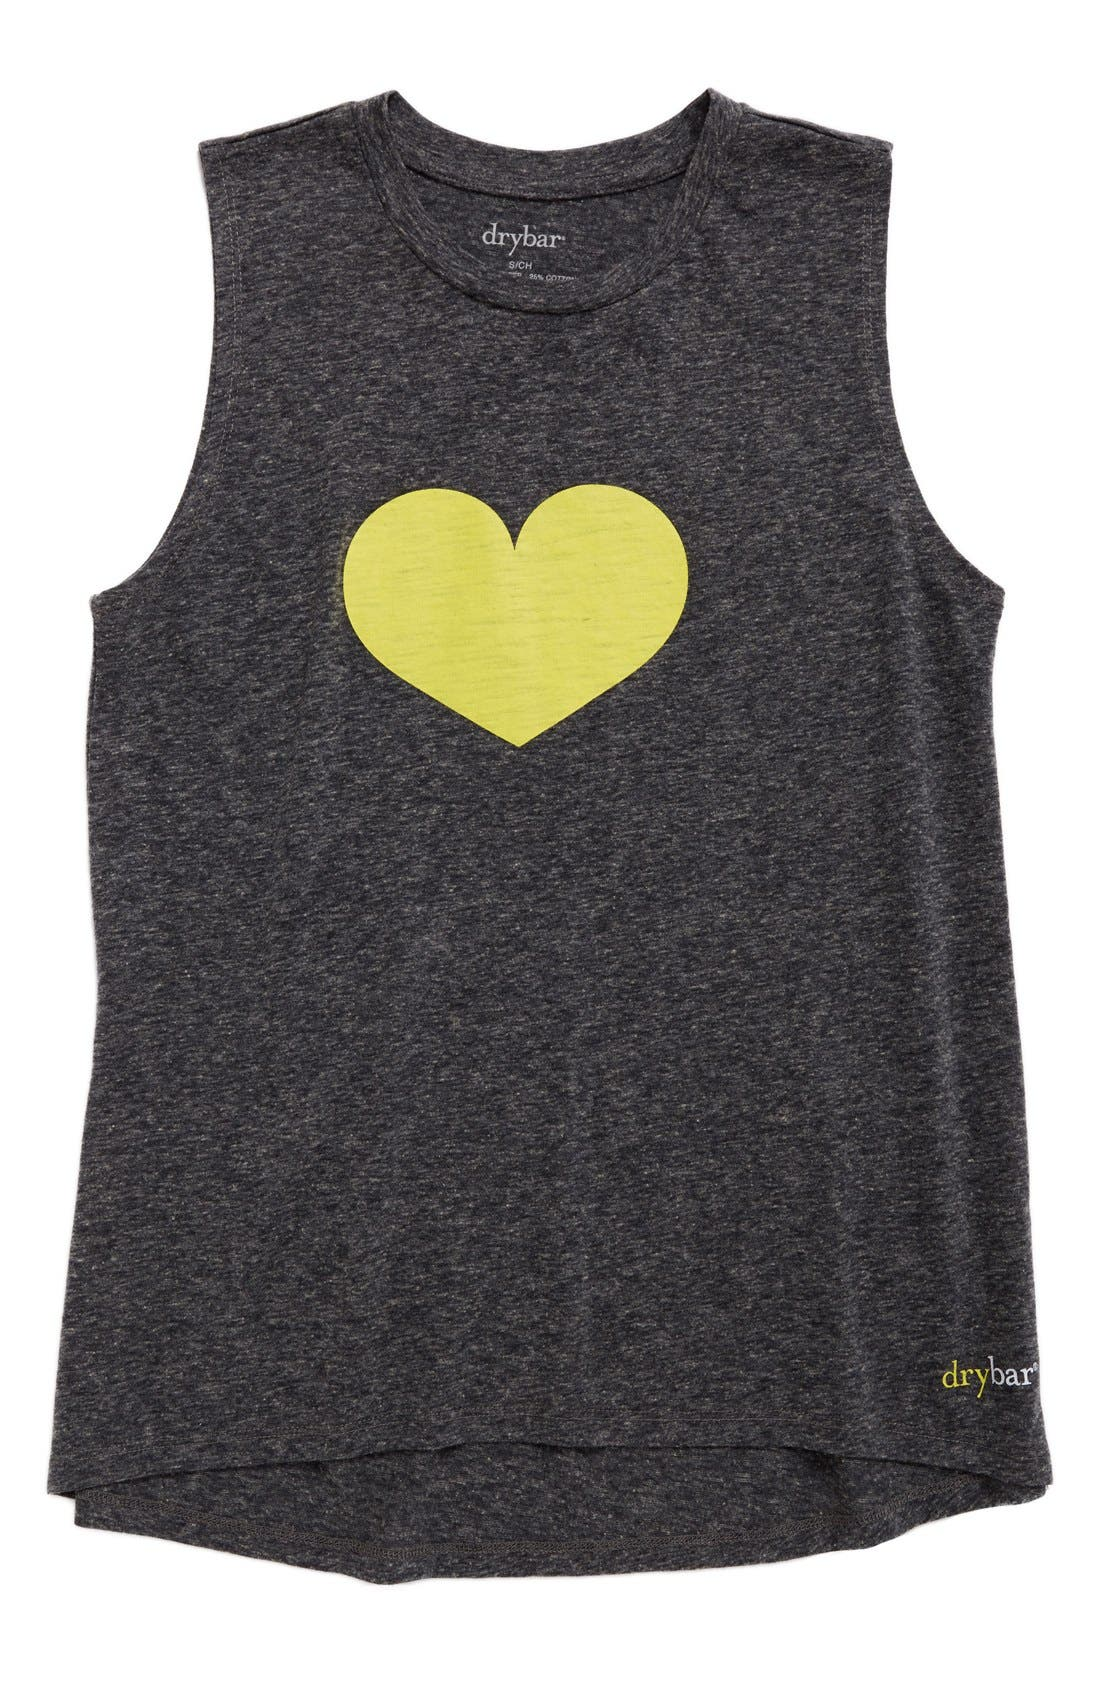 Drybar Capsule Yellow Heart Tank Top (Limited Edition)